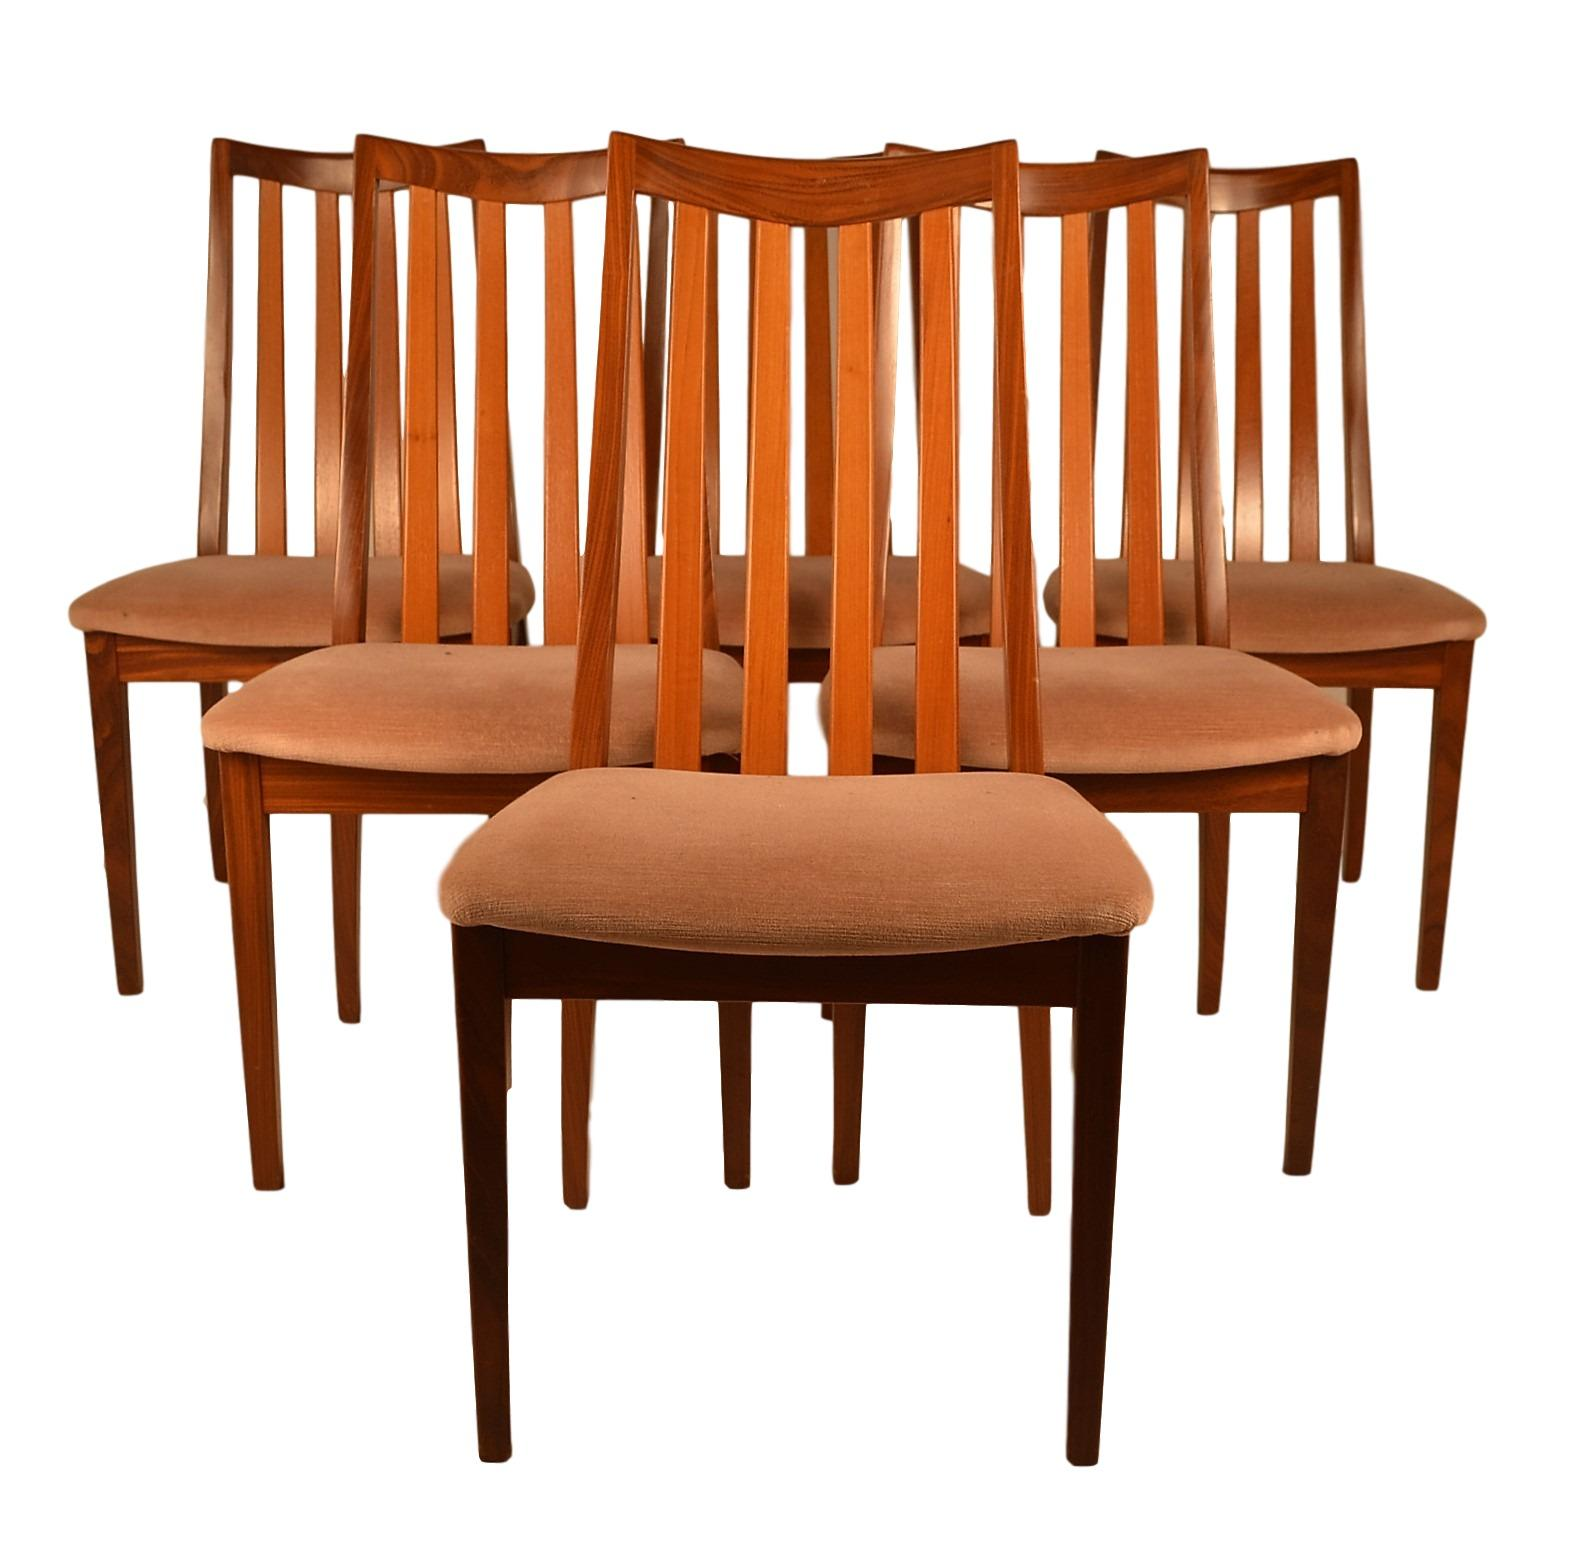 Teak dining chairs by g plan set of 6 chairish for G plan teak dining room chairs